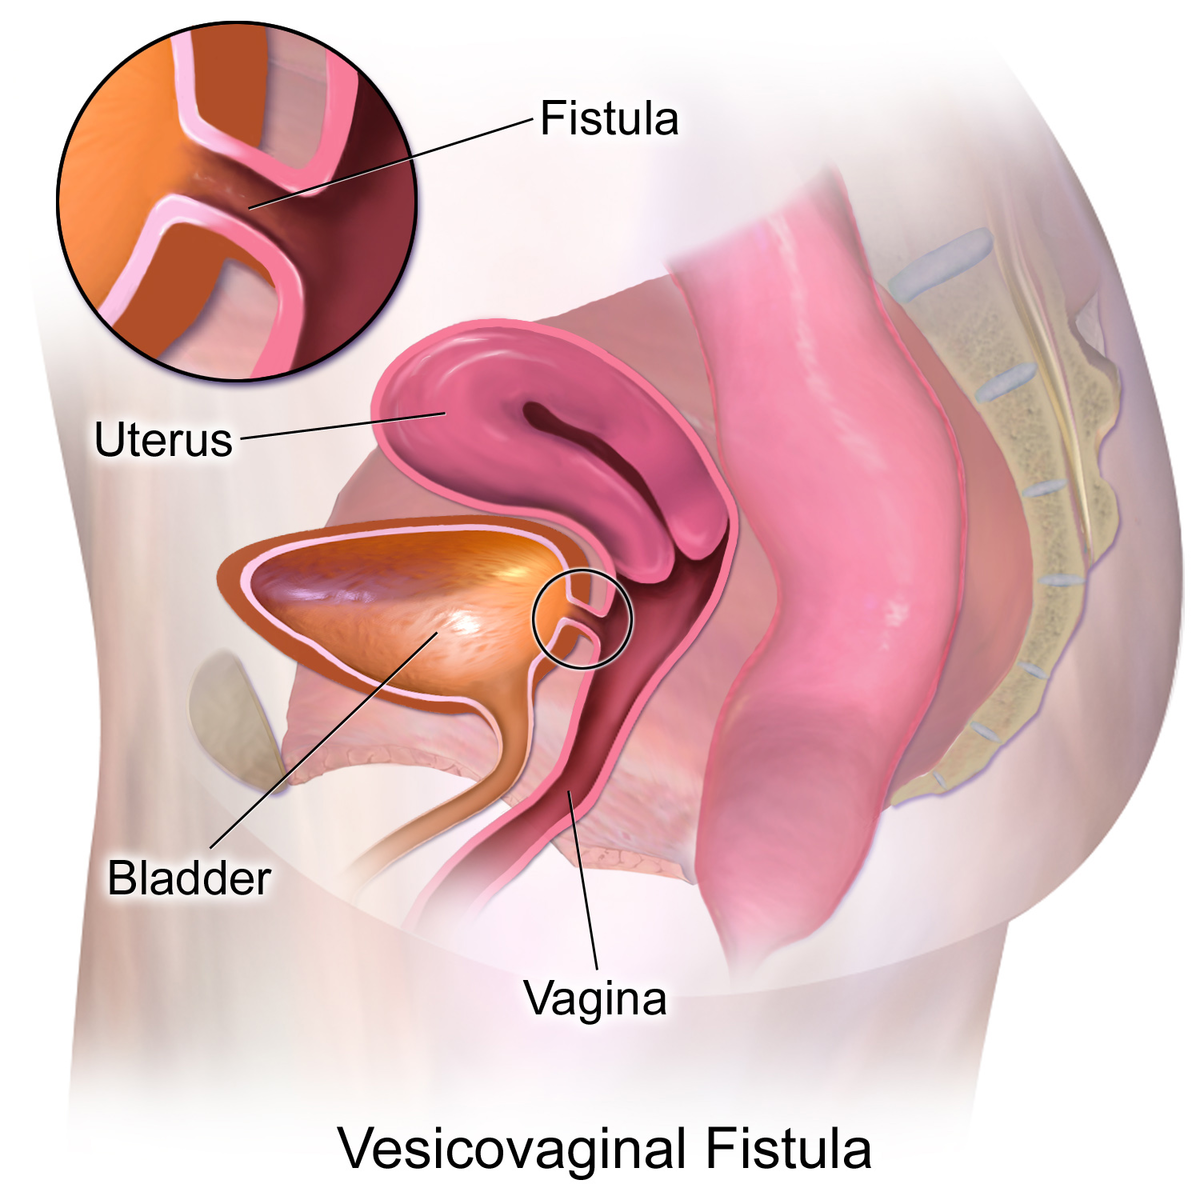 vesico vaginal fistula in birnin health and social care essay Search the history of over 338 billion web pages on the internet.